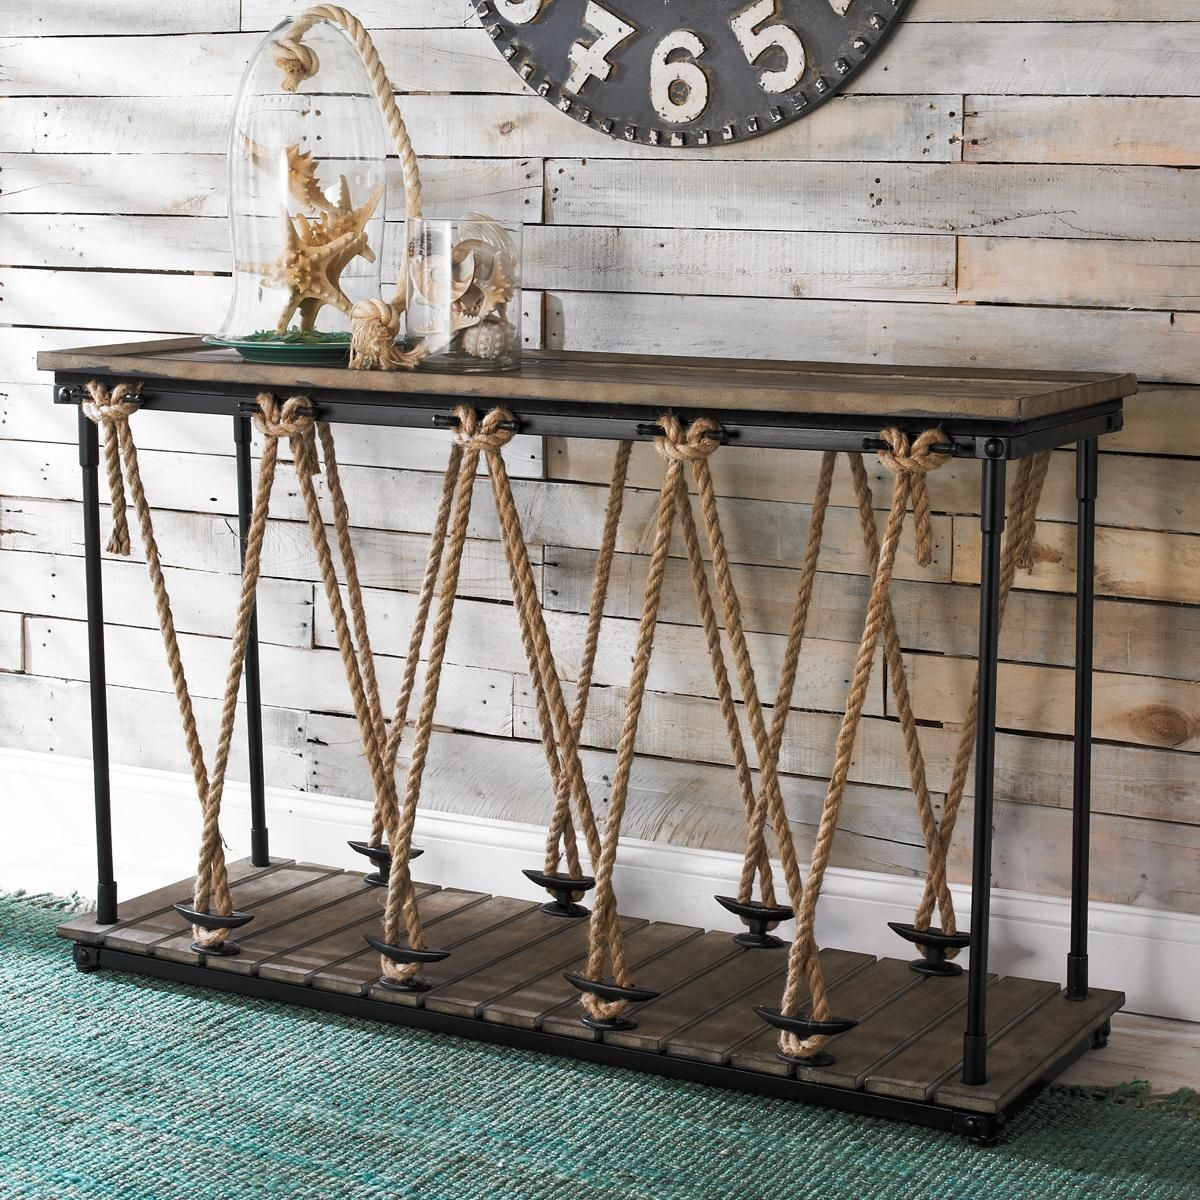 Industrial Rope And Wood Console Decor Home Decor Home Diy